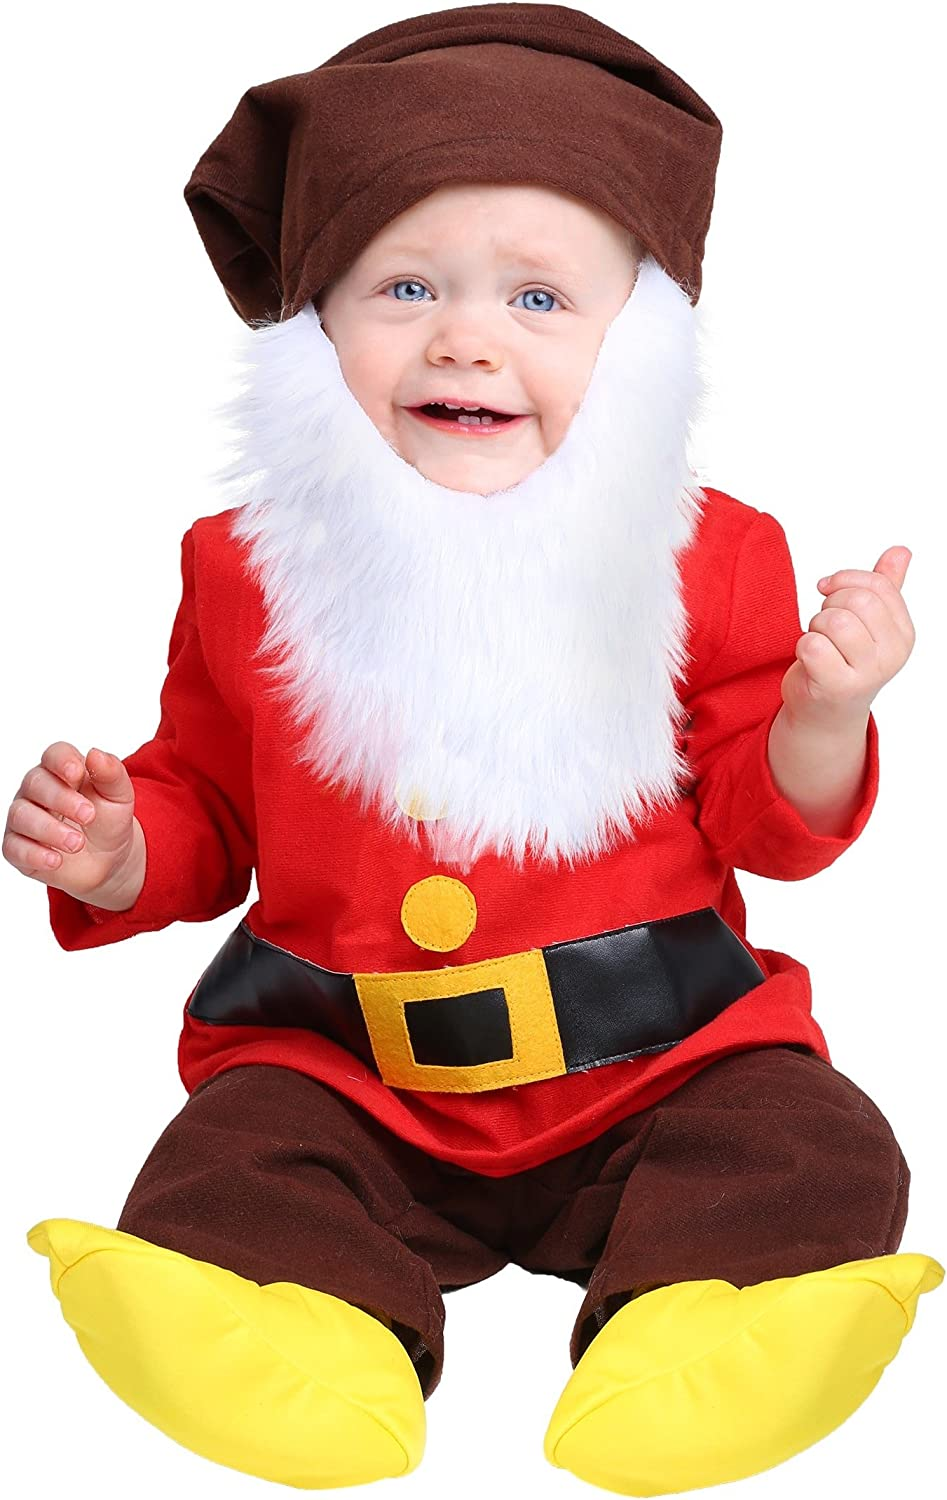 Infant Dwarf Max 90% OFF Costume Same day shipping